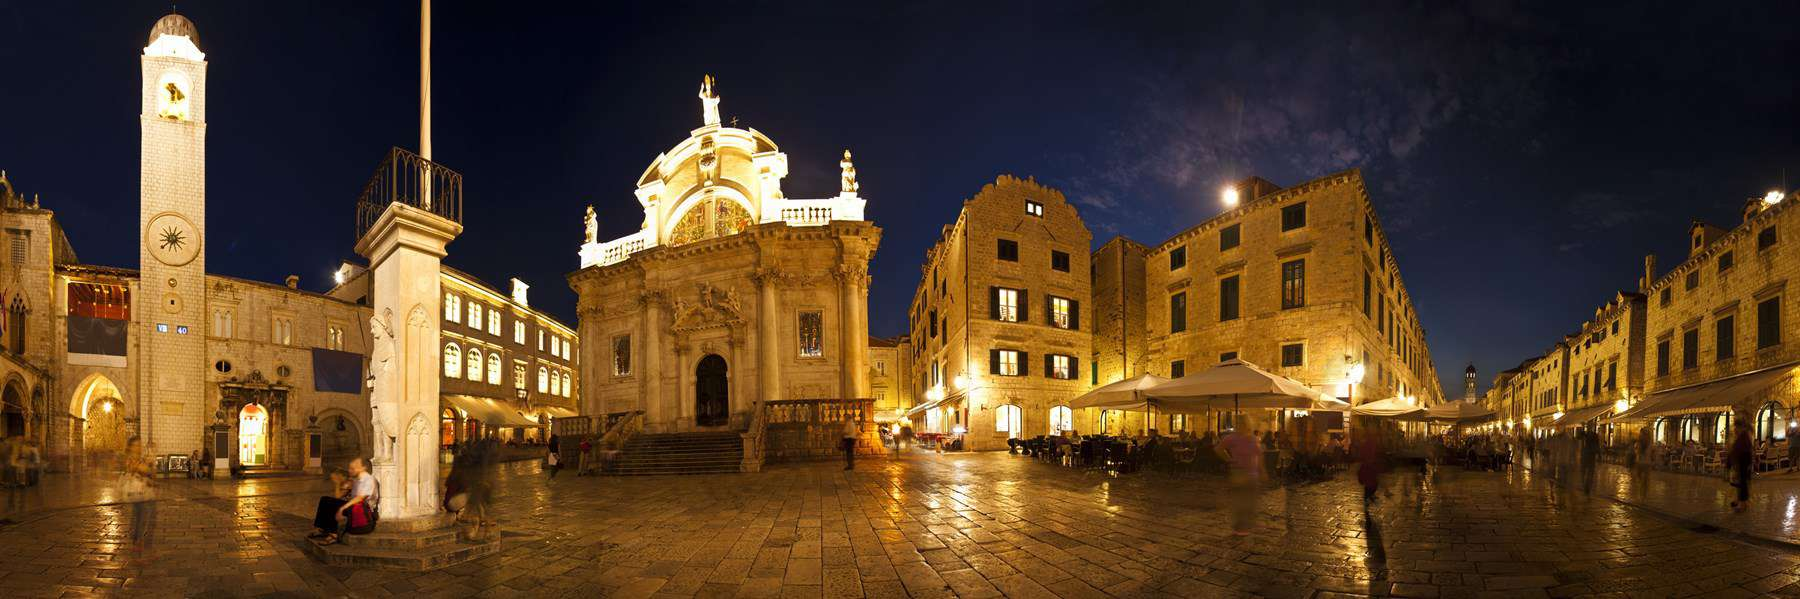 Dubrovnik-Old-Town-in-the-evening